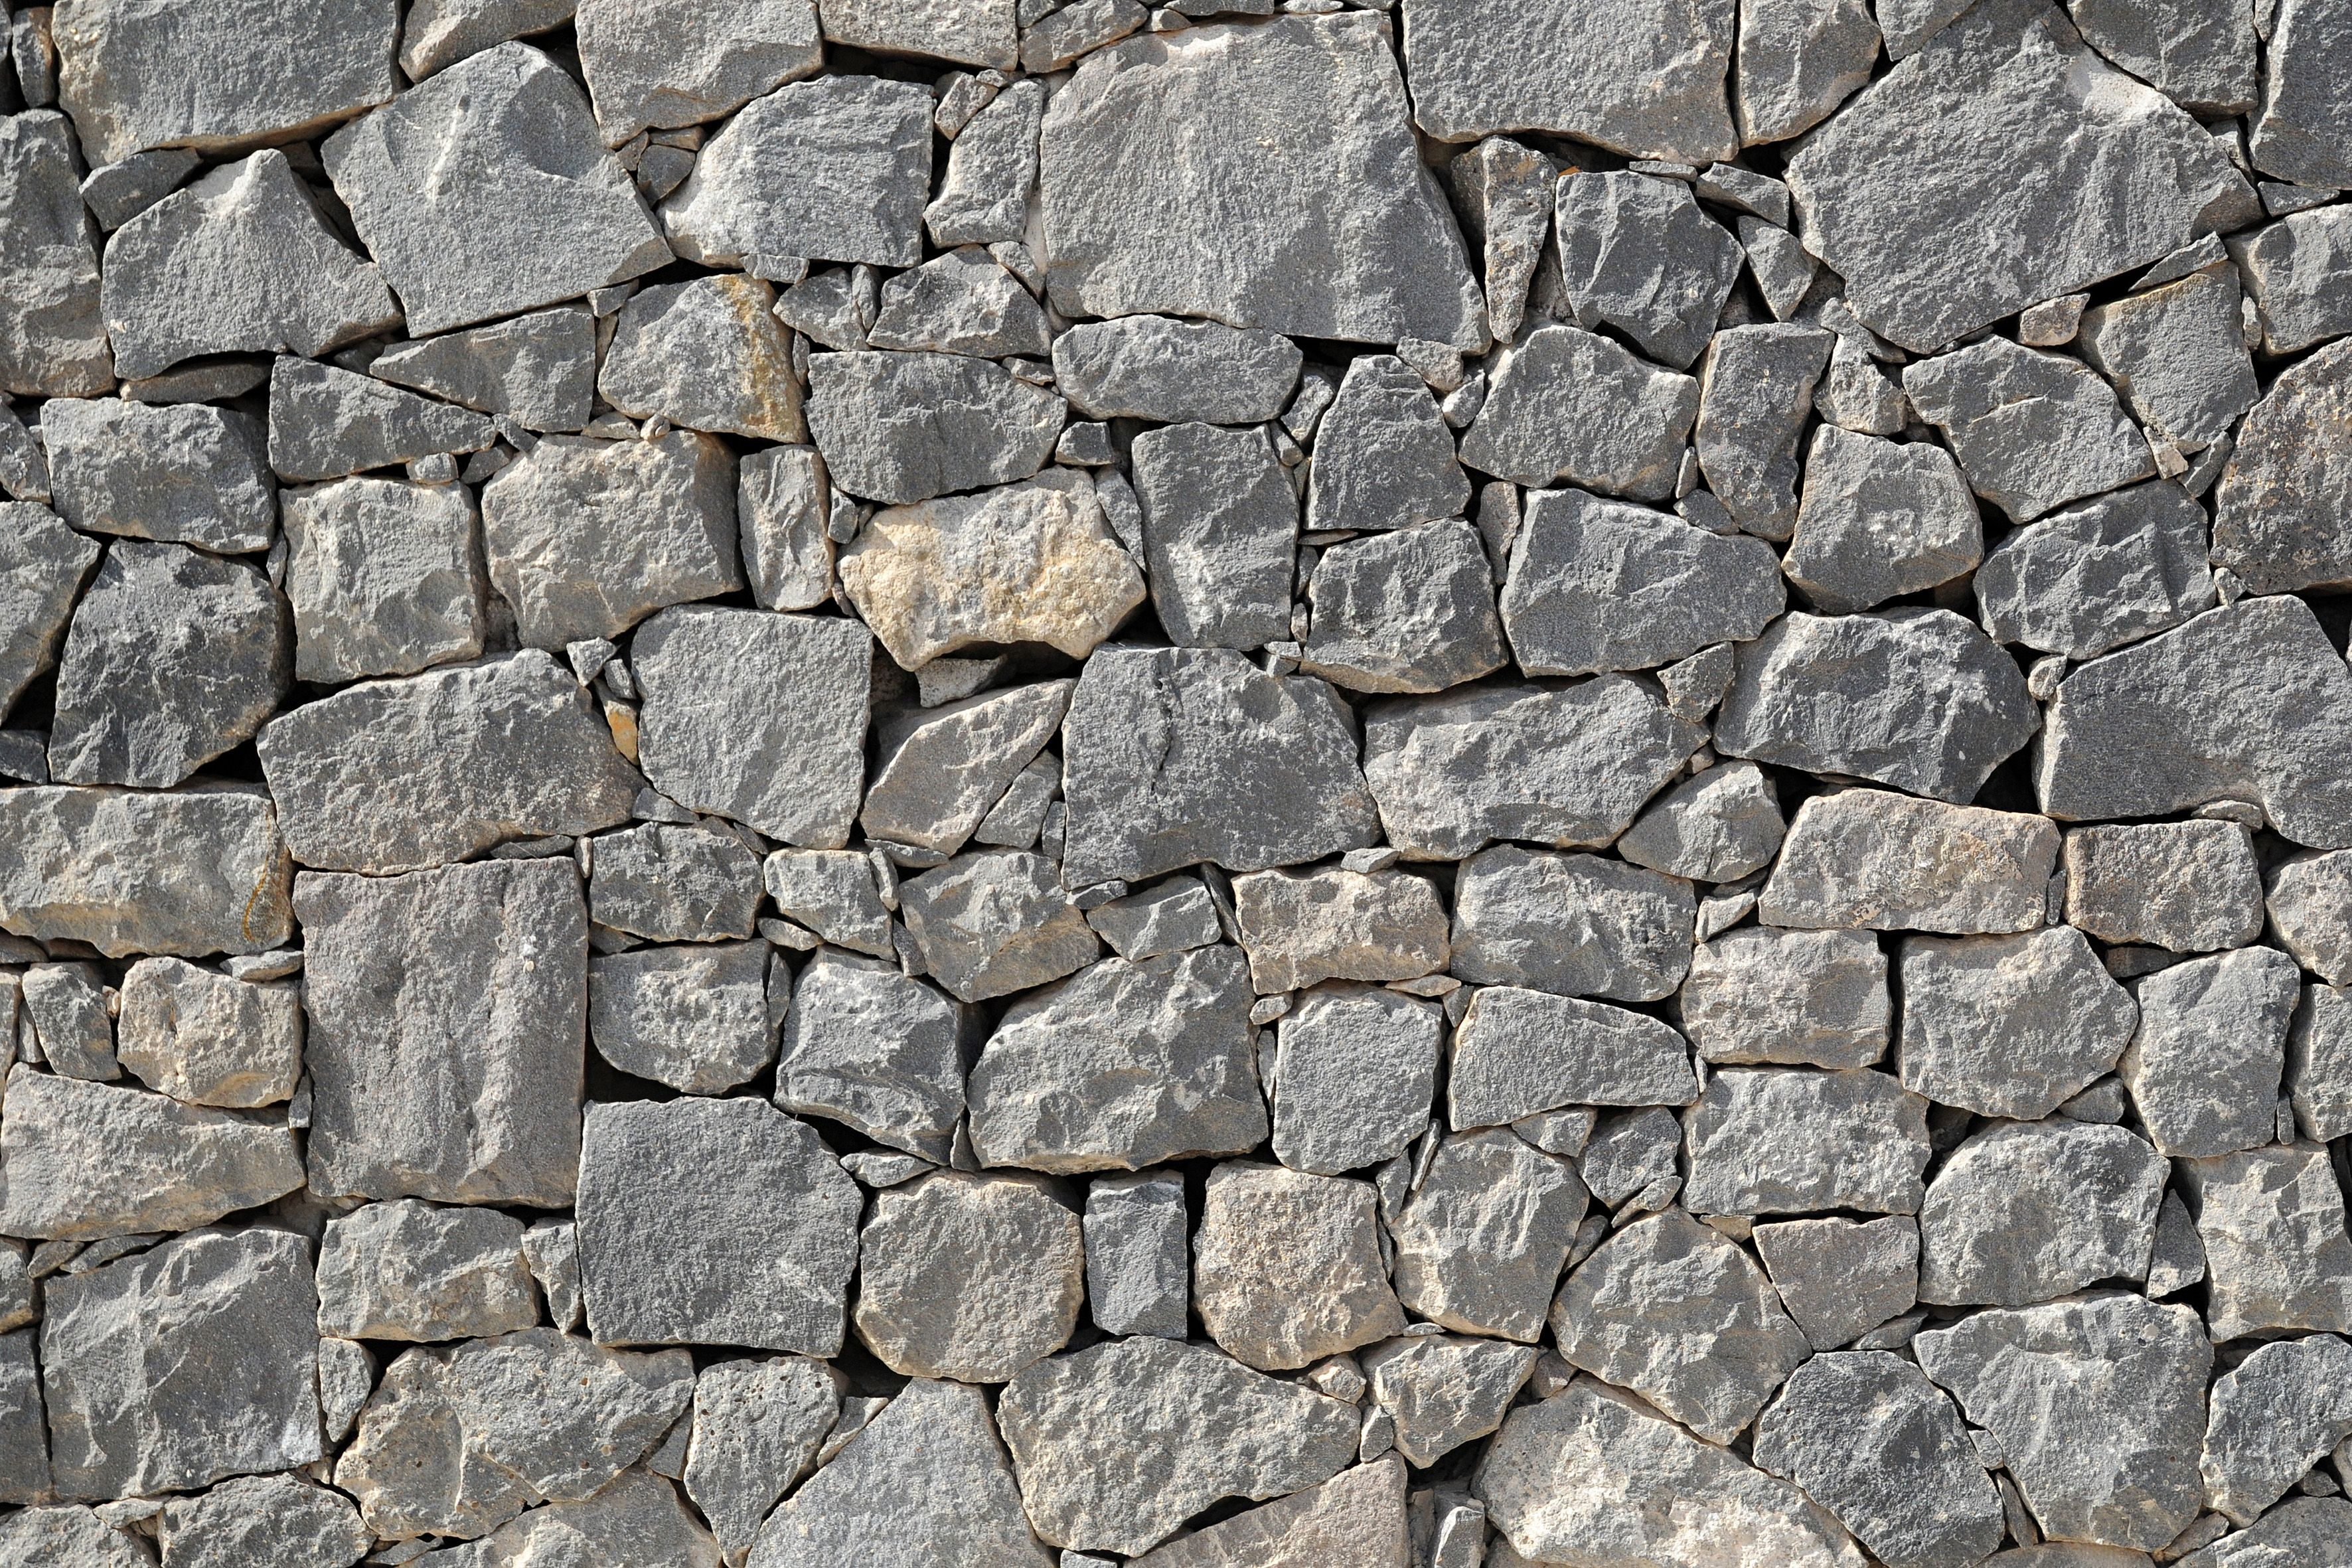 Naturstein Wand Textur This Shows Actual Texture In The Nature By Seeing The Roughness Of